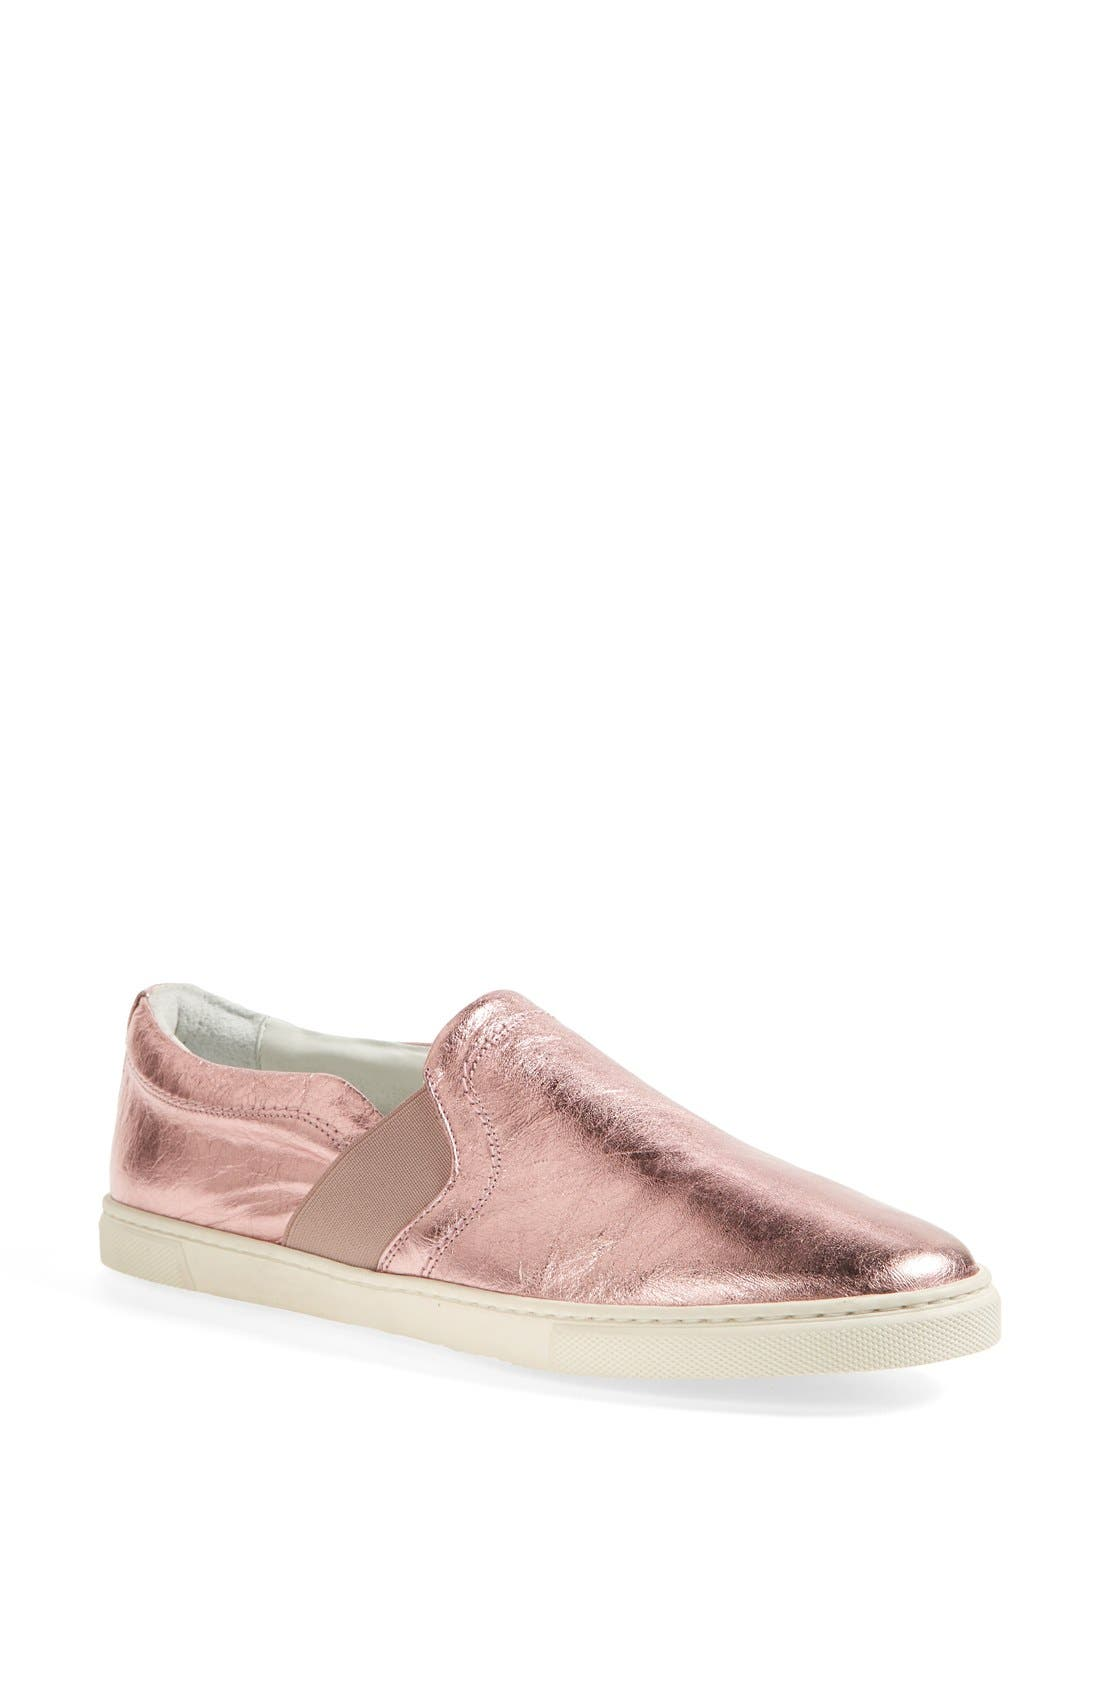 Alternate Image 1 Selected - Lanvin Metallic Sneaker (Women)